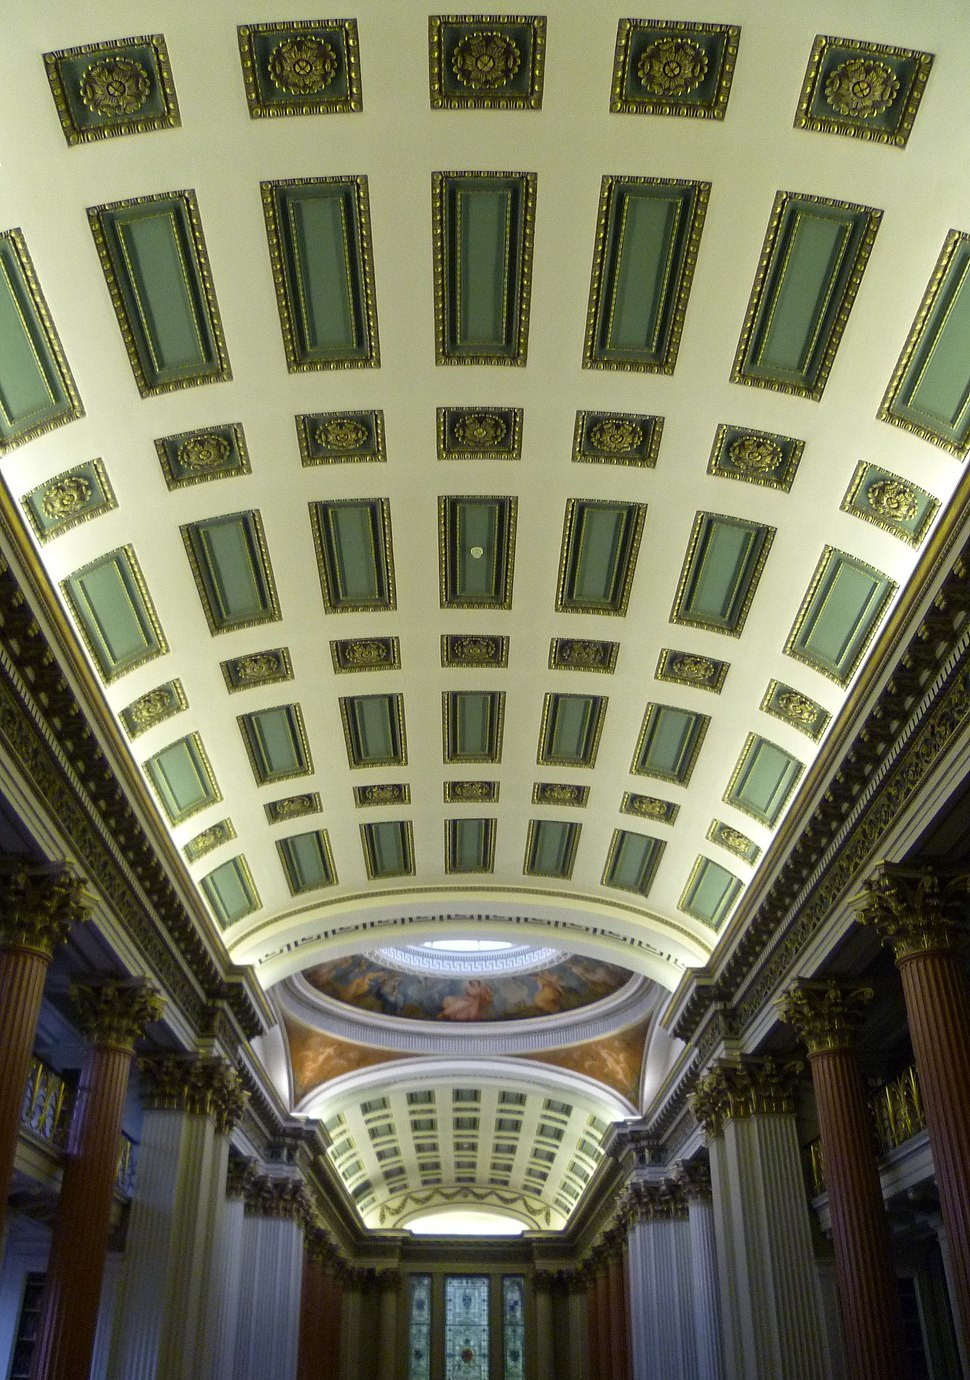 Signet Library ceiling